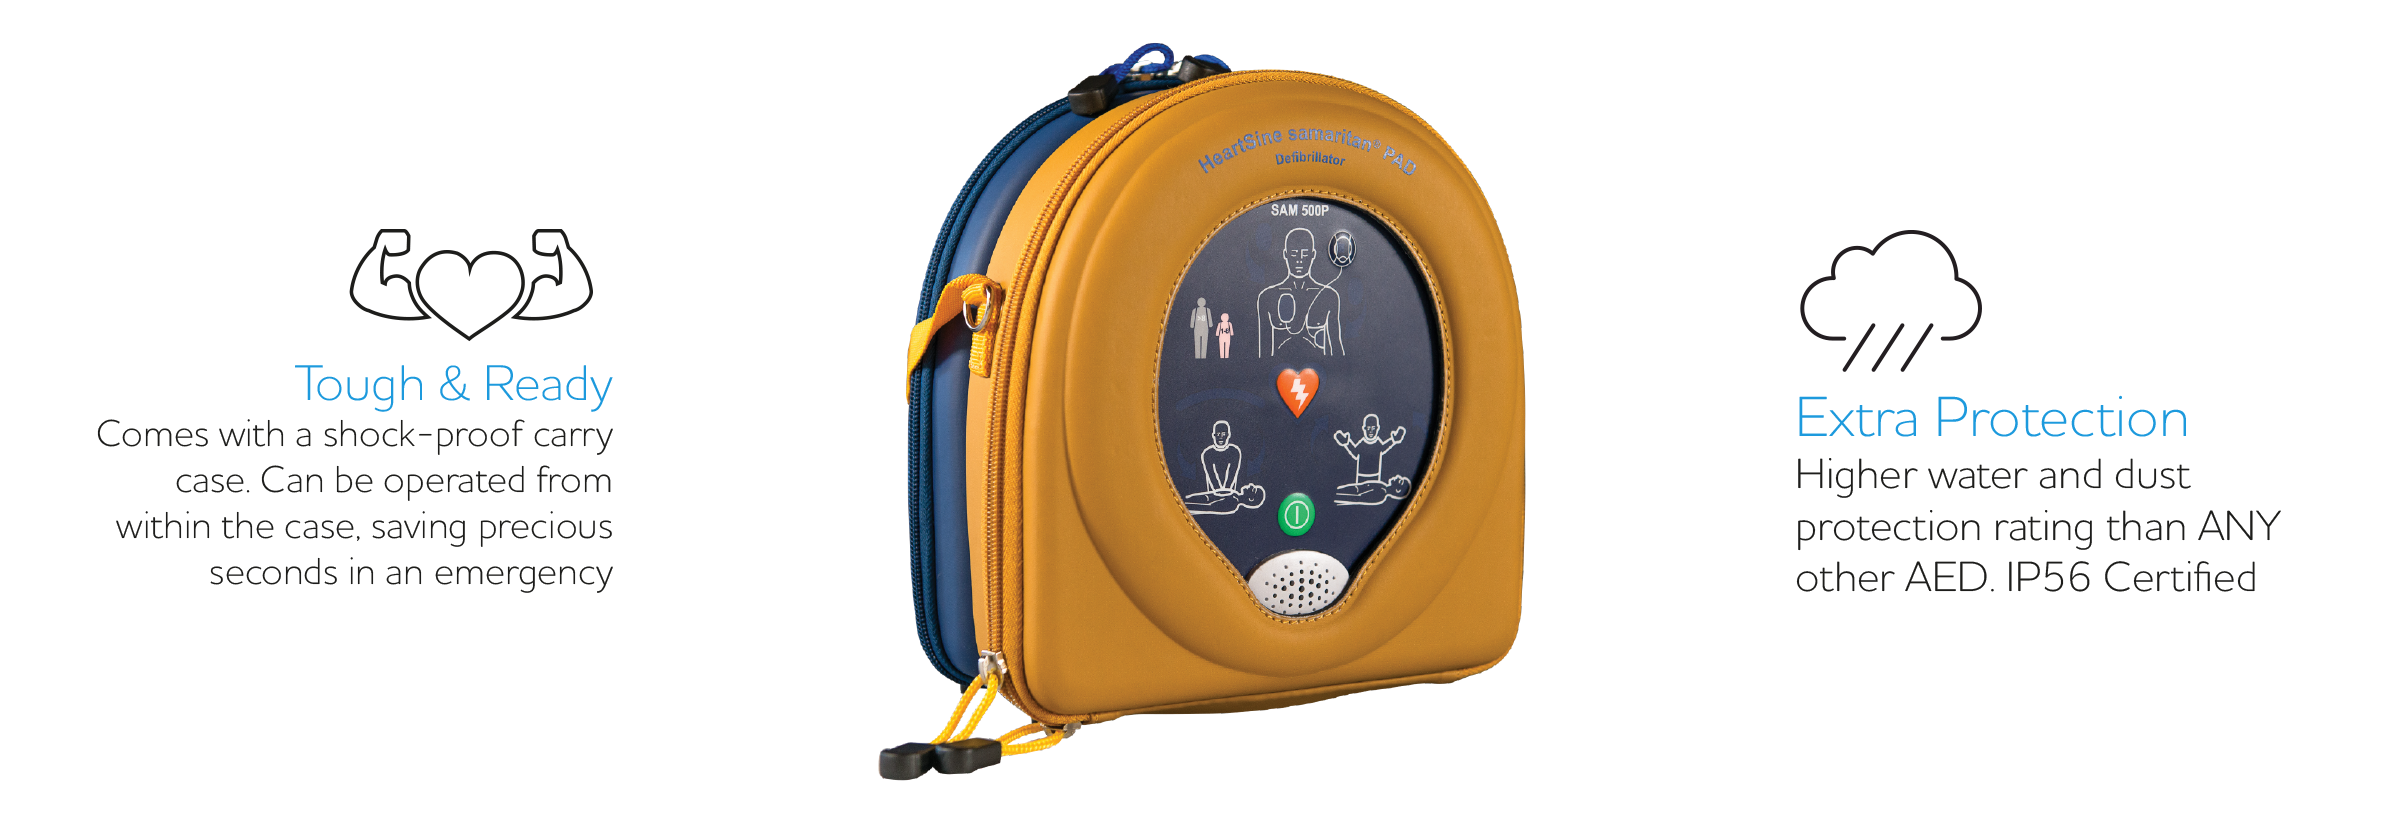 Key information for Heartsine 500p - Including Ip56 Rating and The tough case.